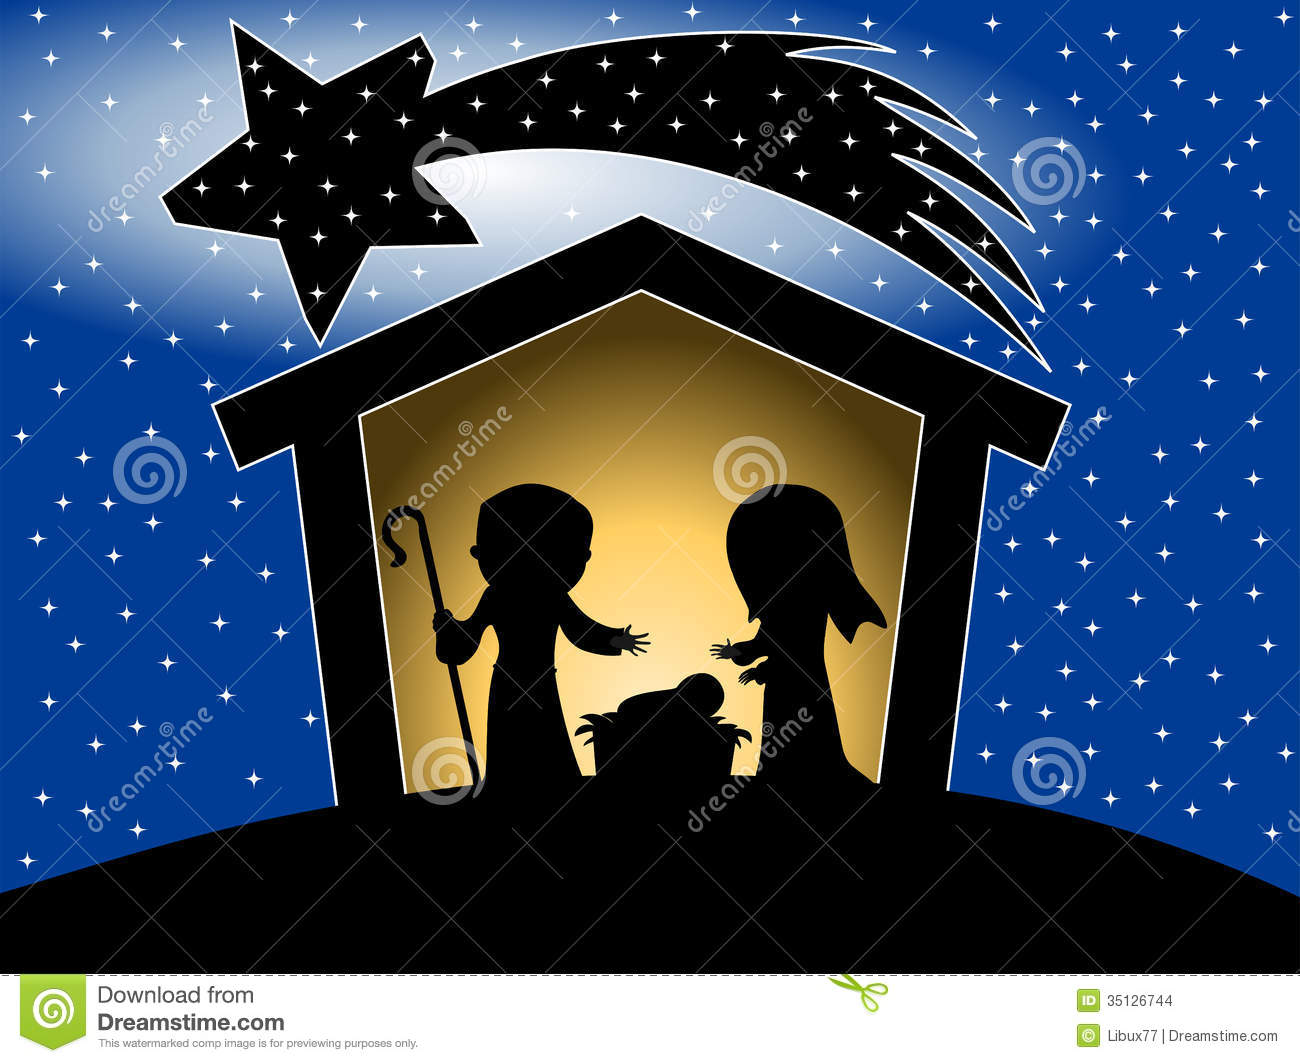 Illustration featuring silhouette of Christmas nativity scene with ...